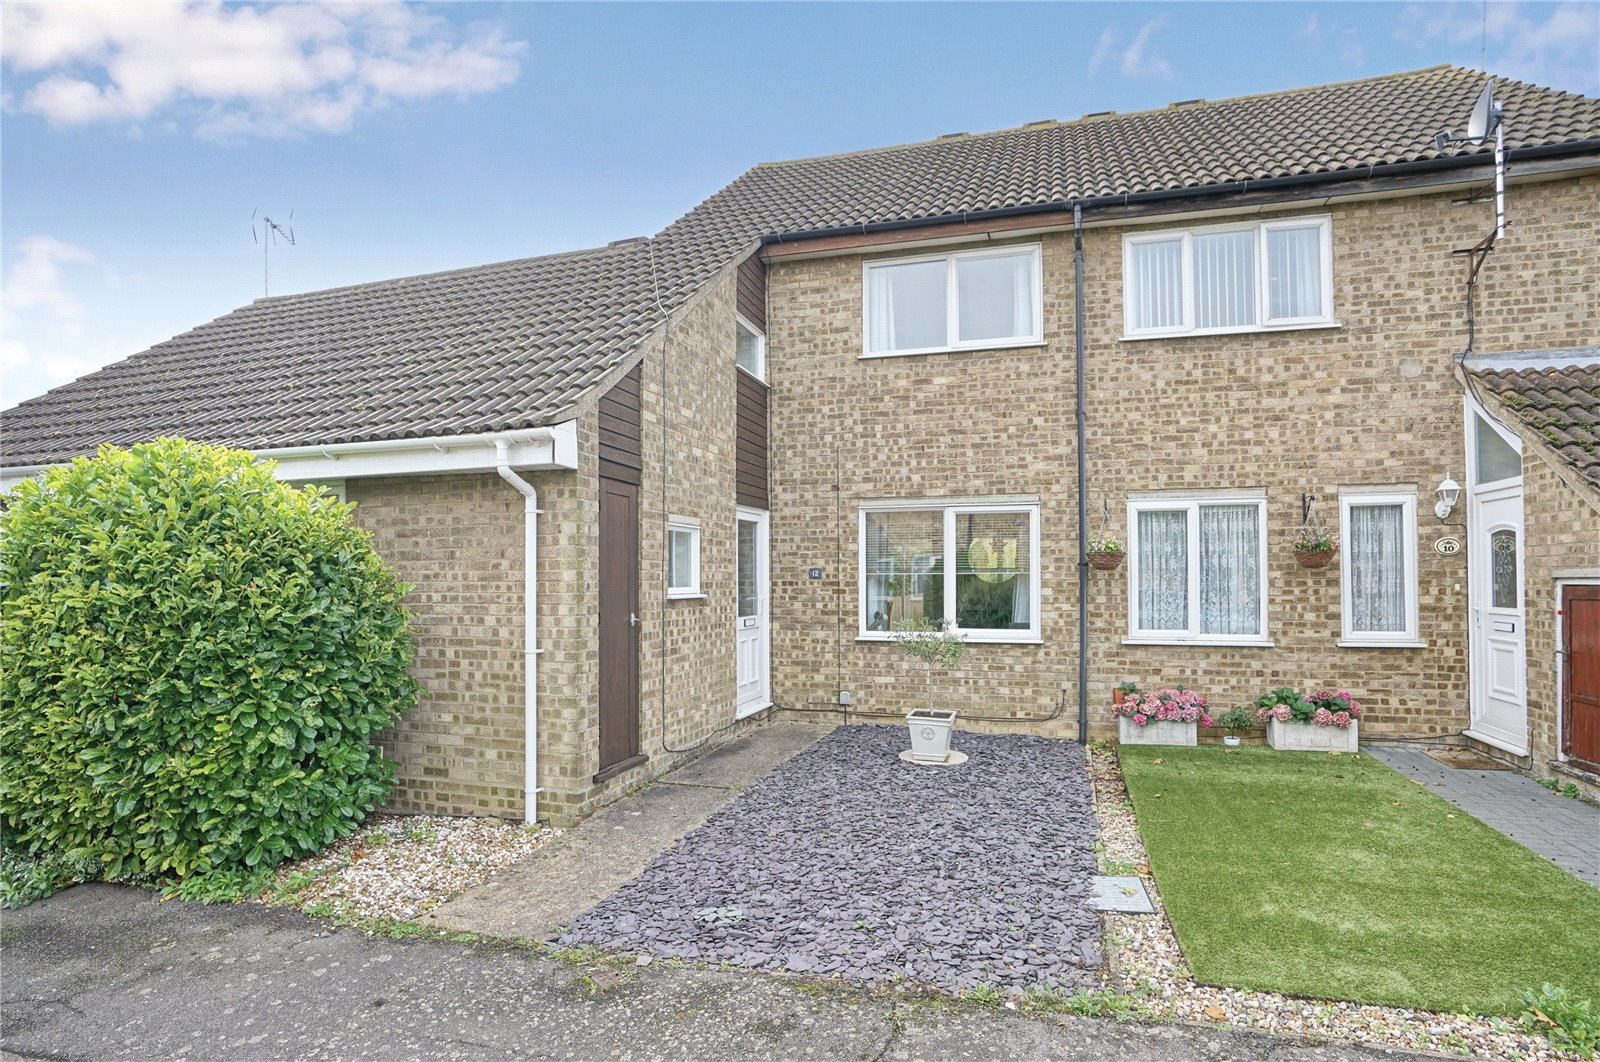 3 bed house for sale in St. Ives, PE27 3DB 0